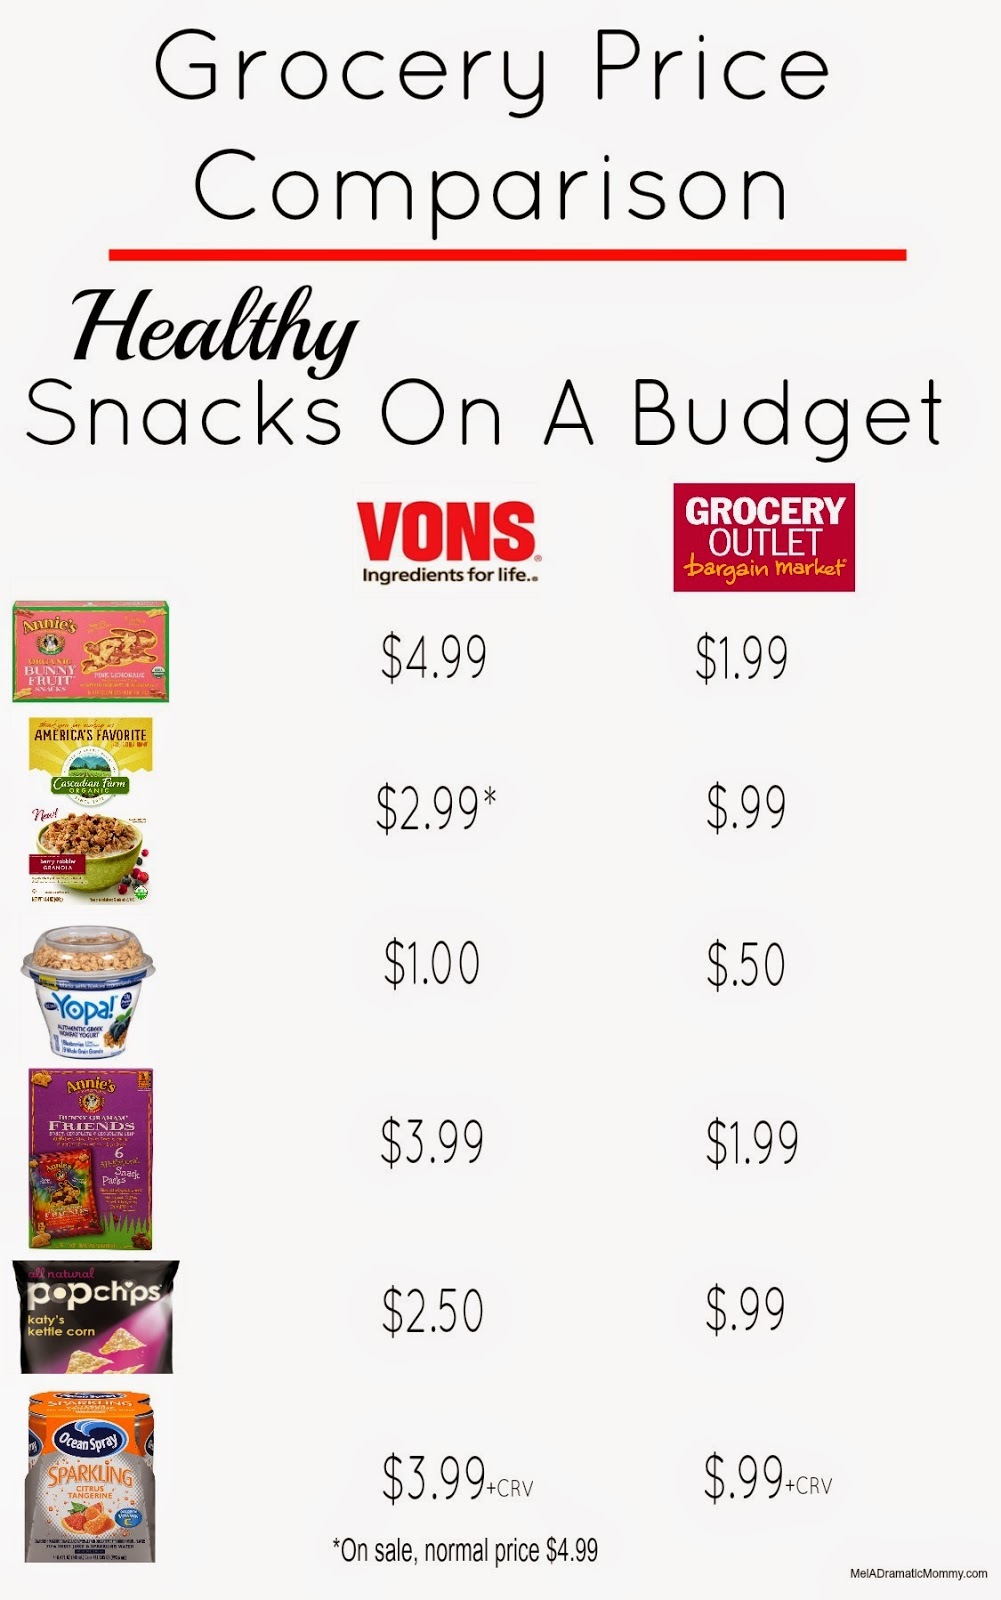 Vons versus Grocrey Outlet budget friendly snacks for athletes